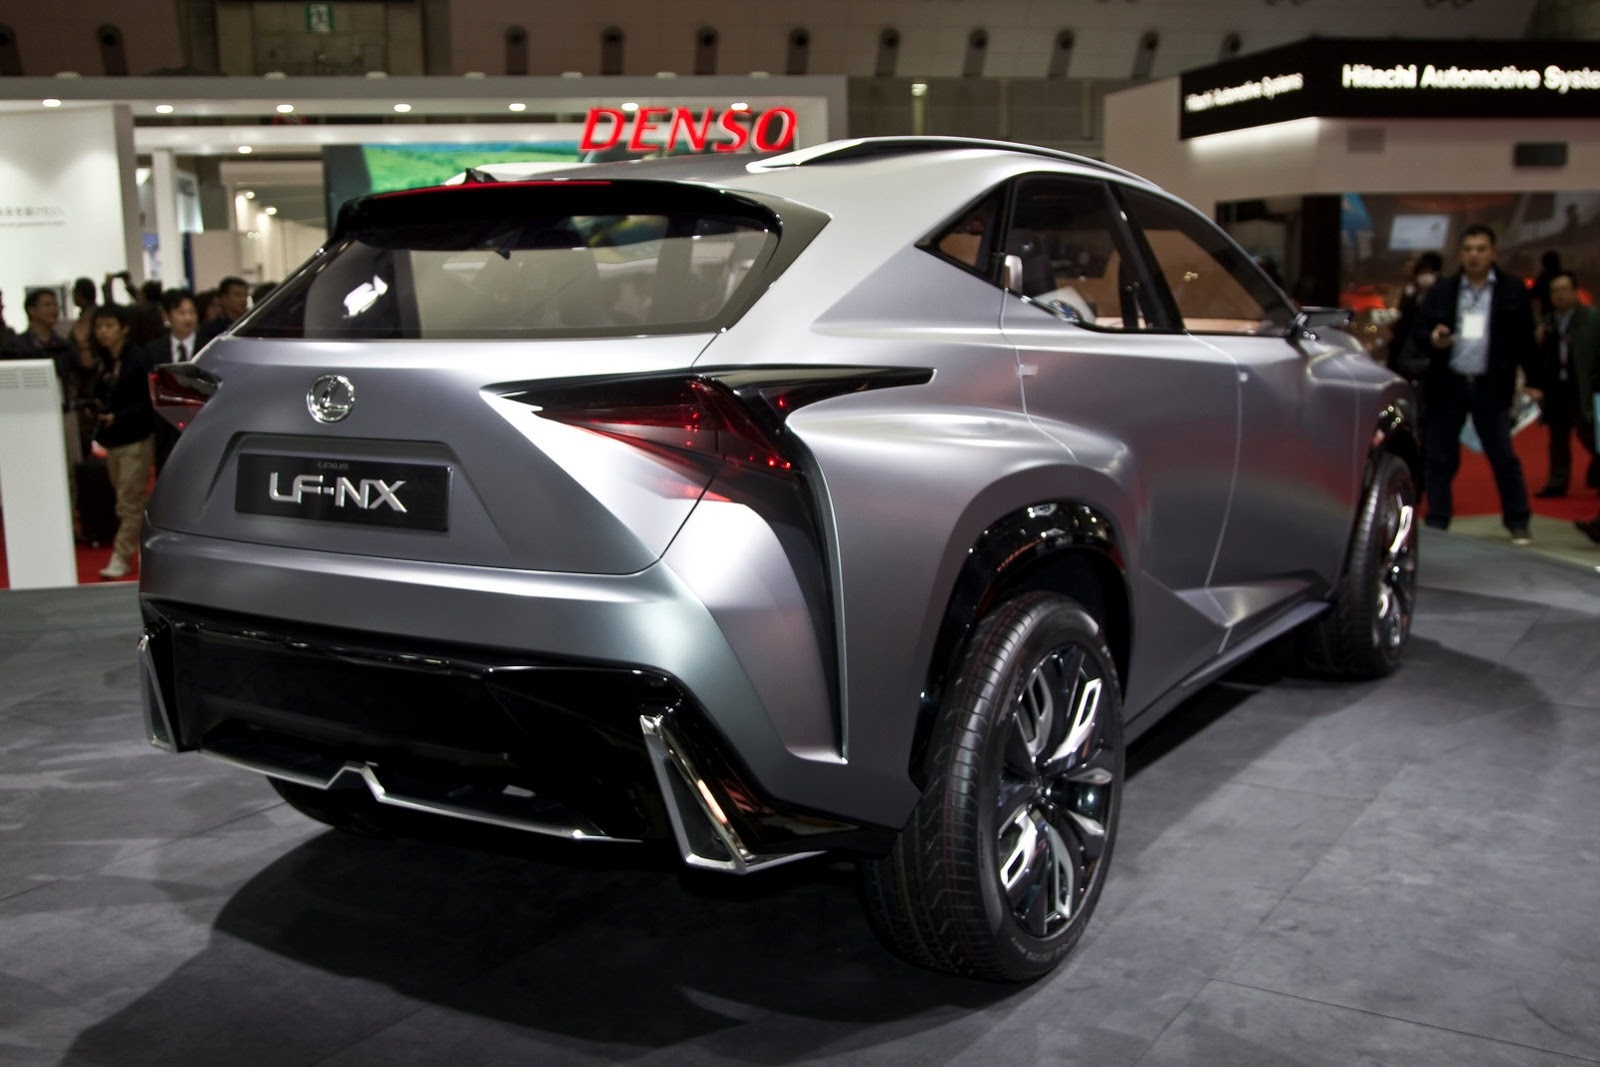 lexus lf nx turbo concept. Black Bedroom Furniture Sets. Home Design Ideas